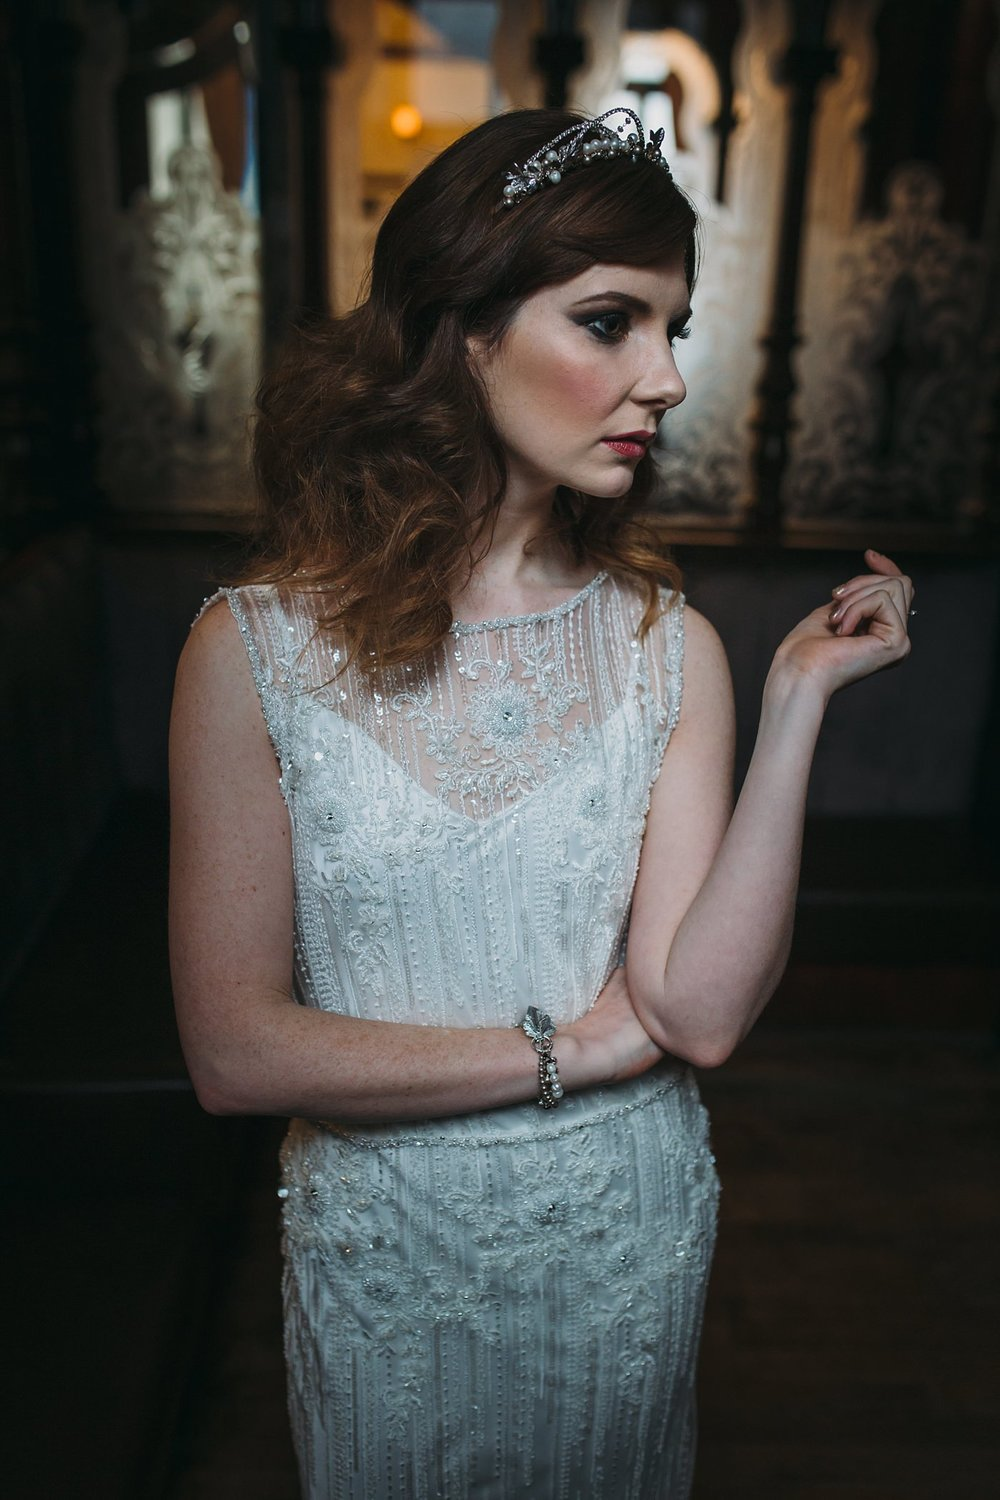 sloans-alternative-wedding-jo-donaldson-photography-flossy-and-dossy-modiste-cameo-bridal-styling-cat-robertson-mua_0199.jpg